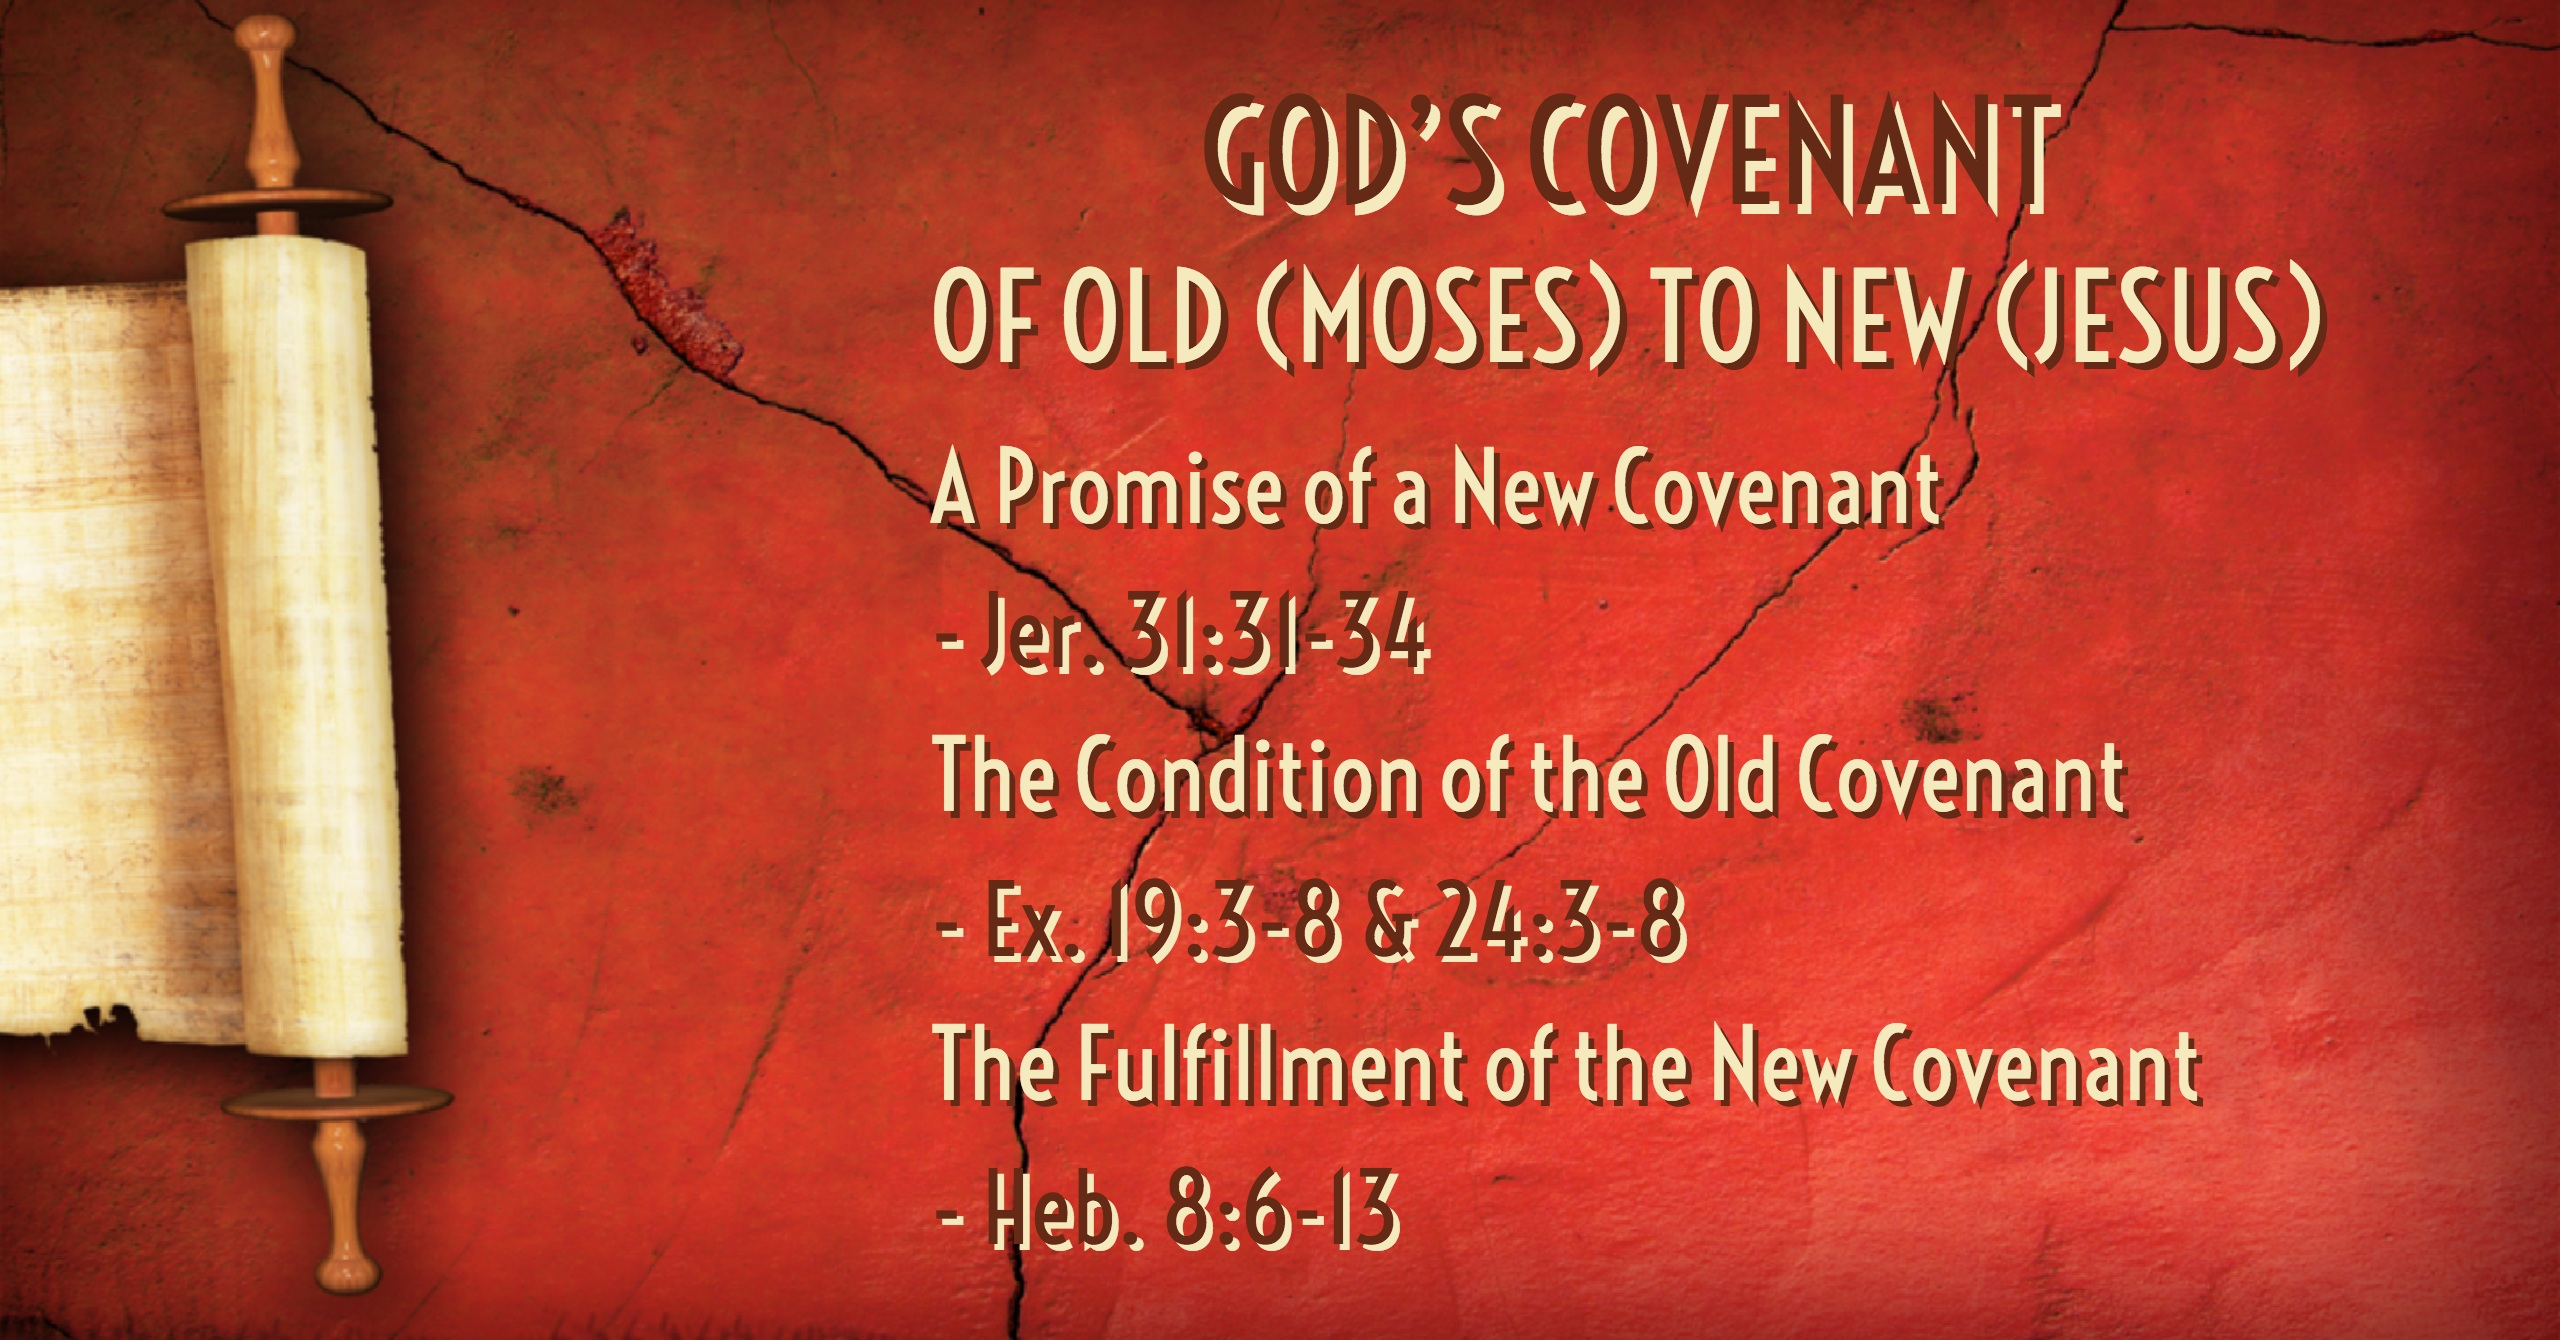 01 28 2018 GOD'S COVENANT OF OLD (MOSES) TO NEW (JESUS